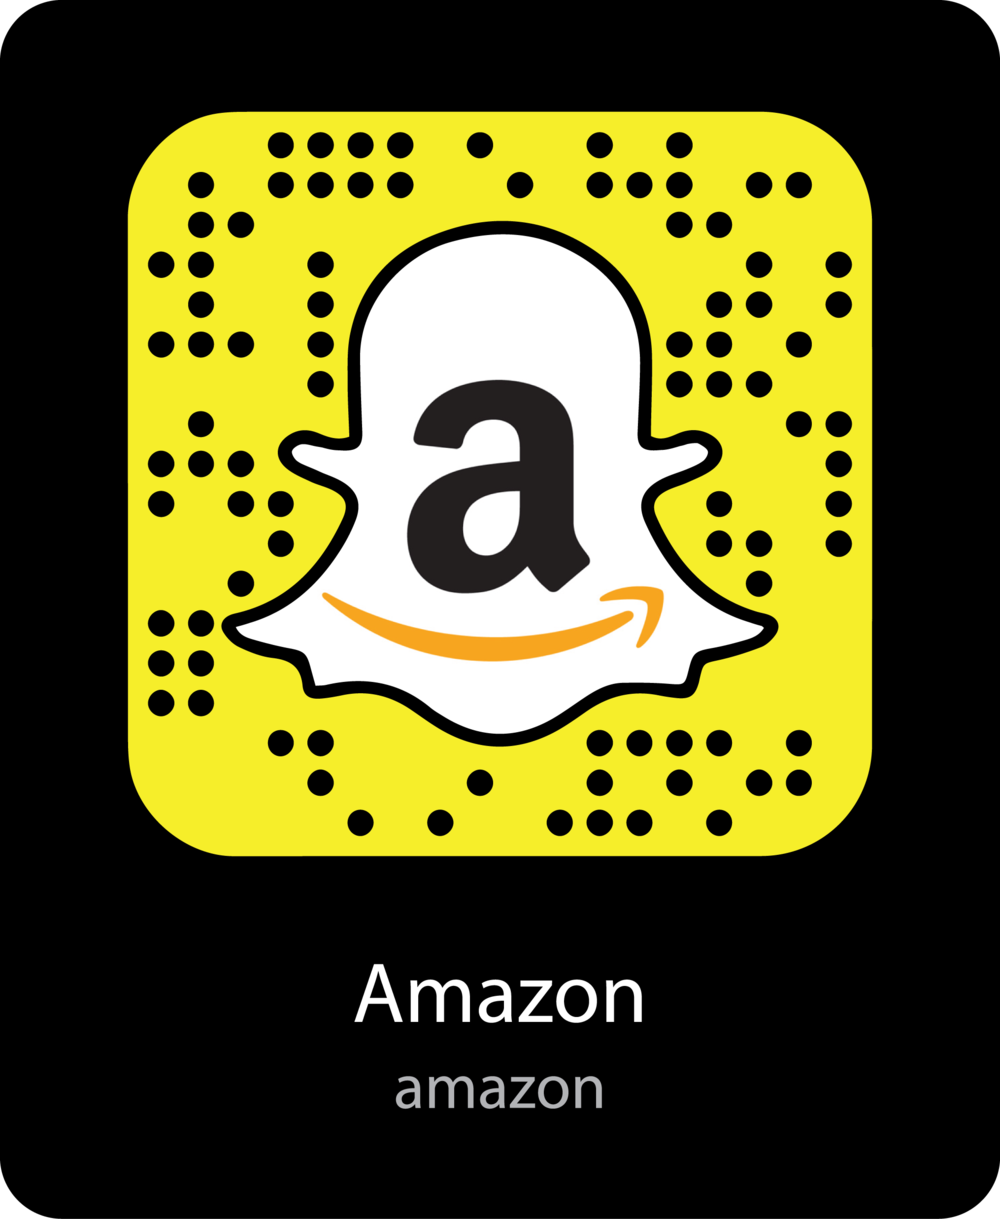 amazon-Brands-snapchat-snapcode.png